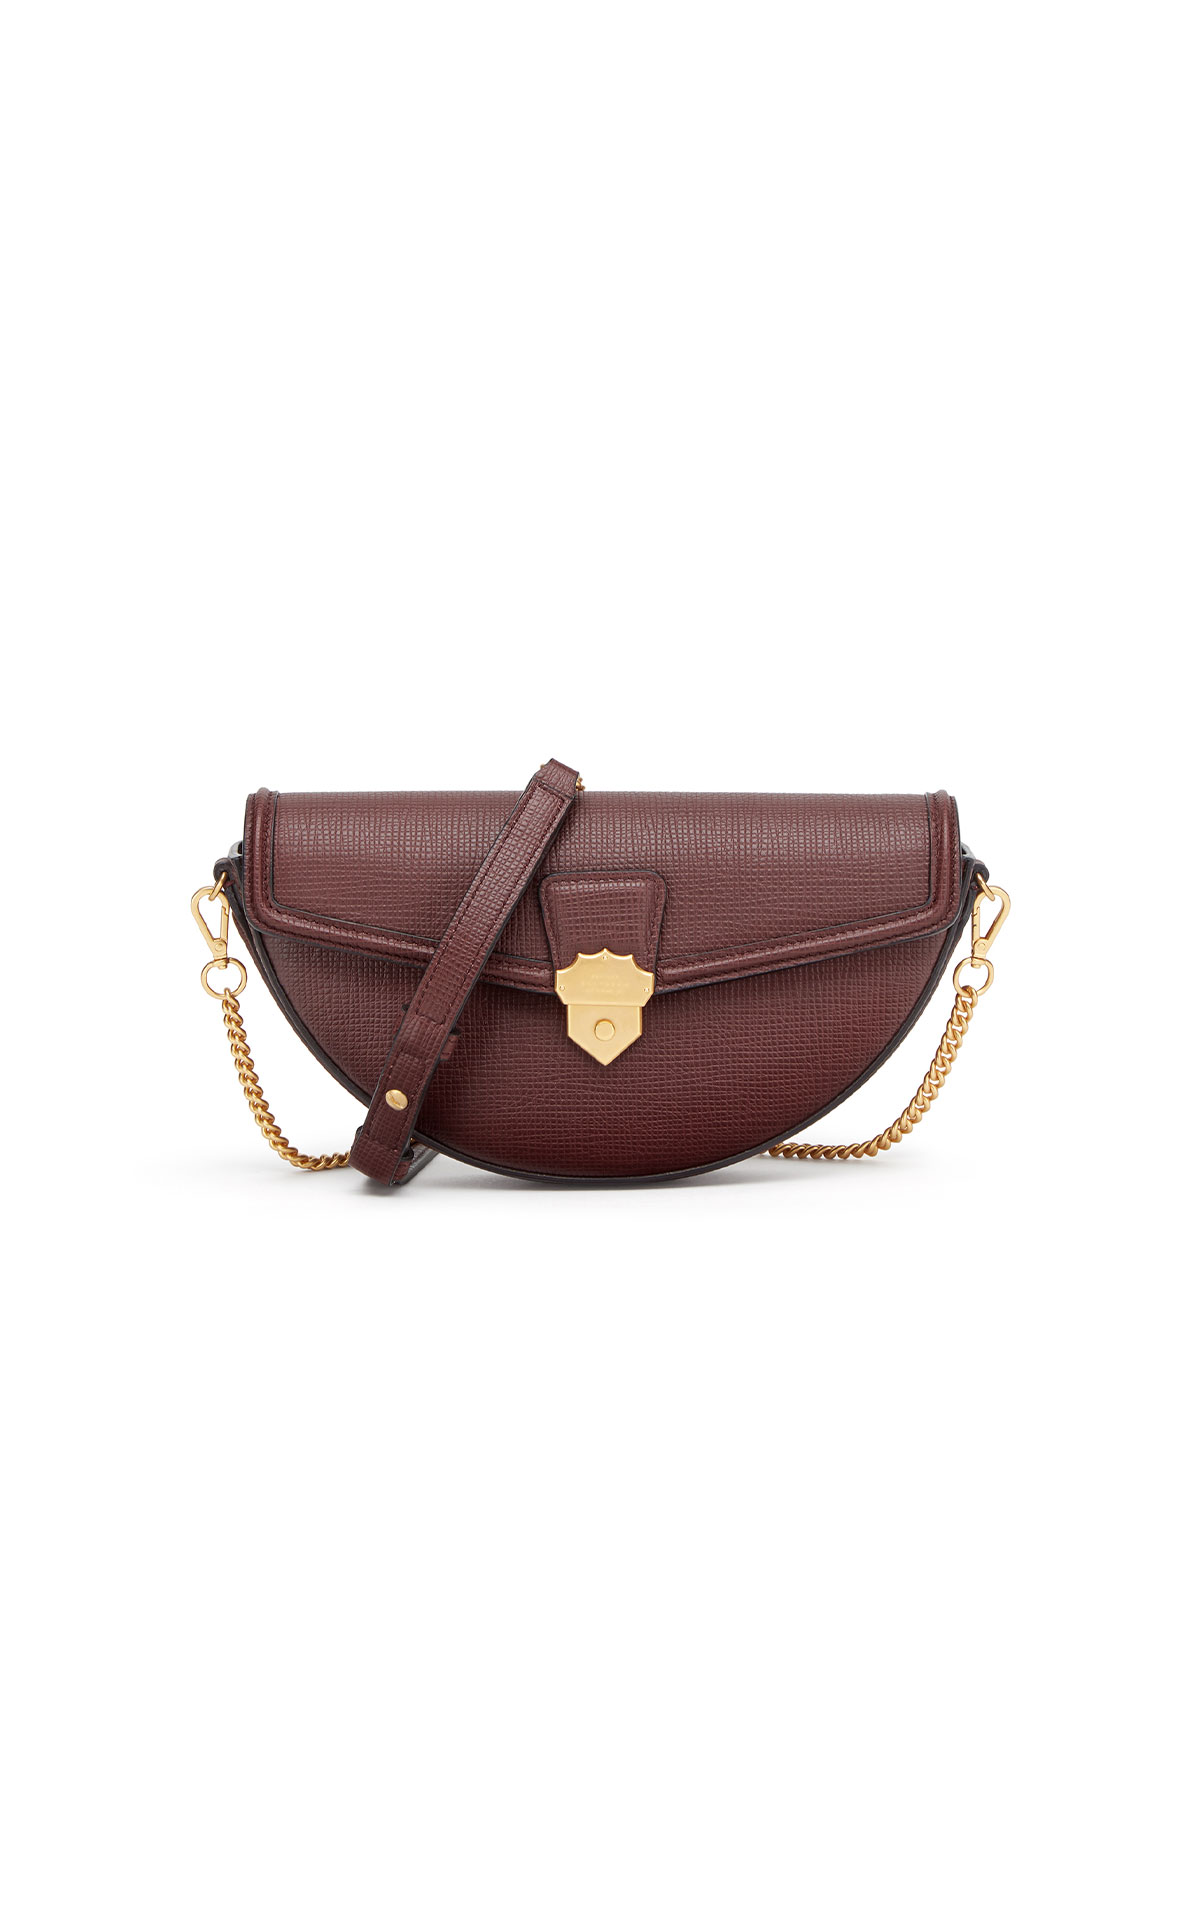 Smythson Semi circle crossbody chain bag from Bicester Village